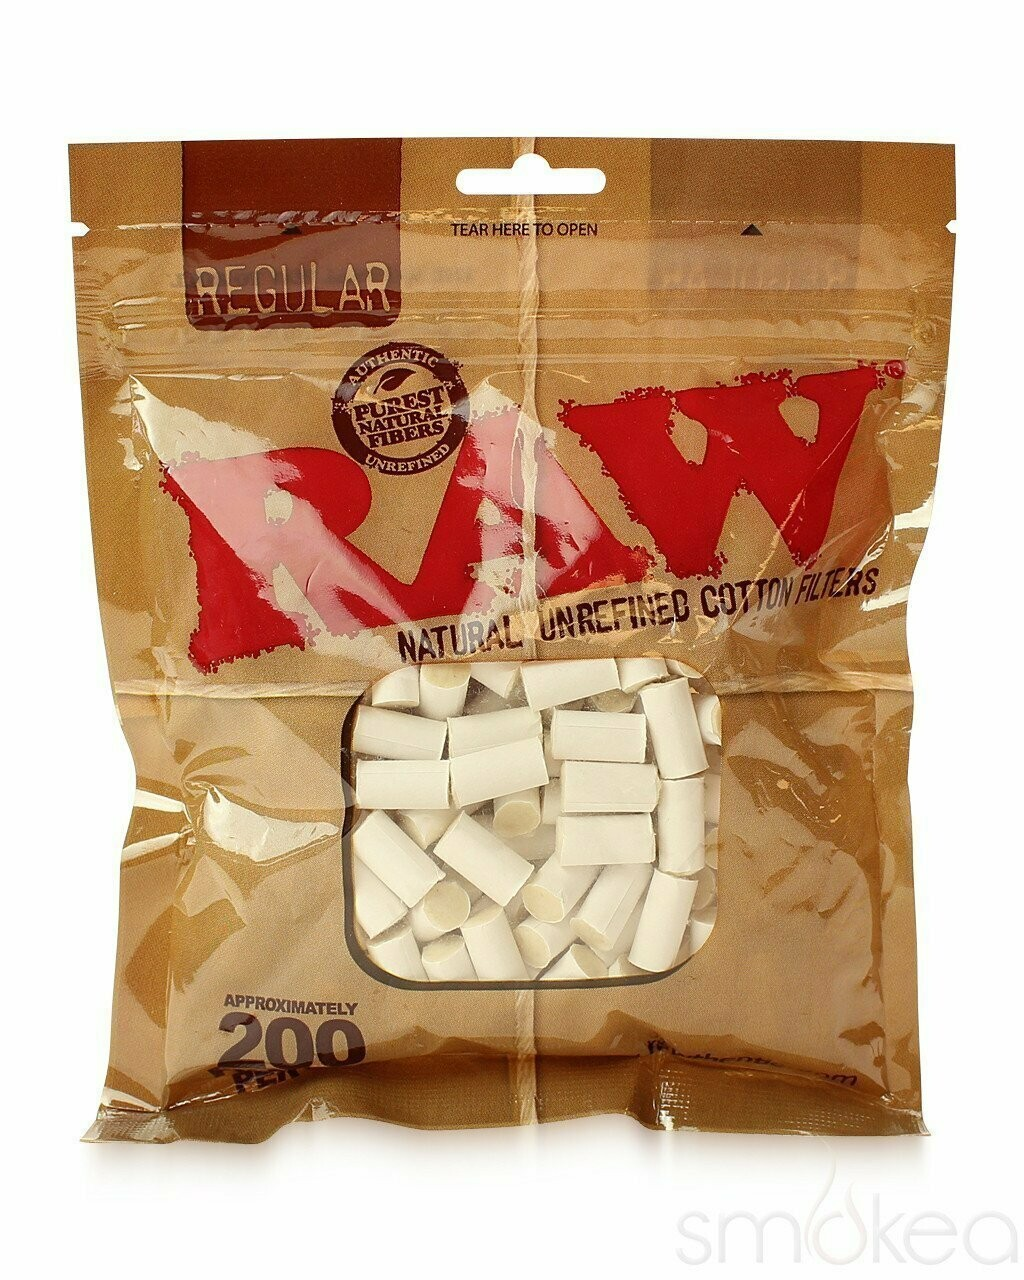 Raw - Natural unrefined cotton filters regular